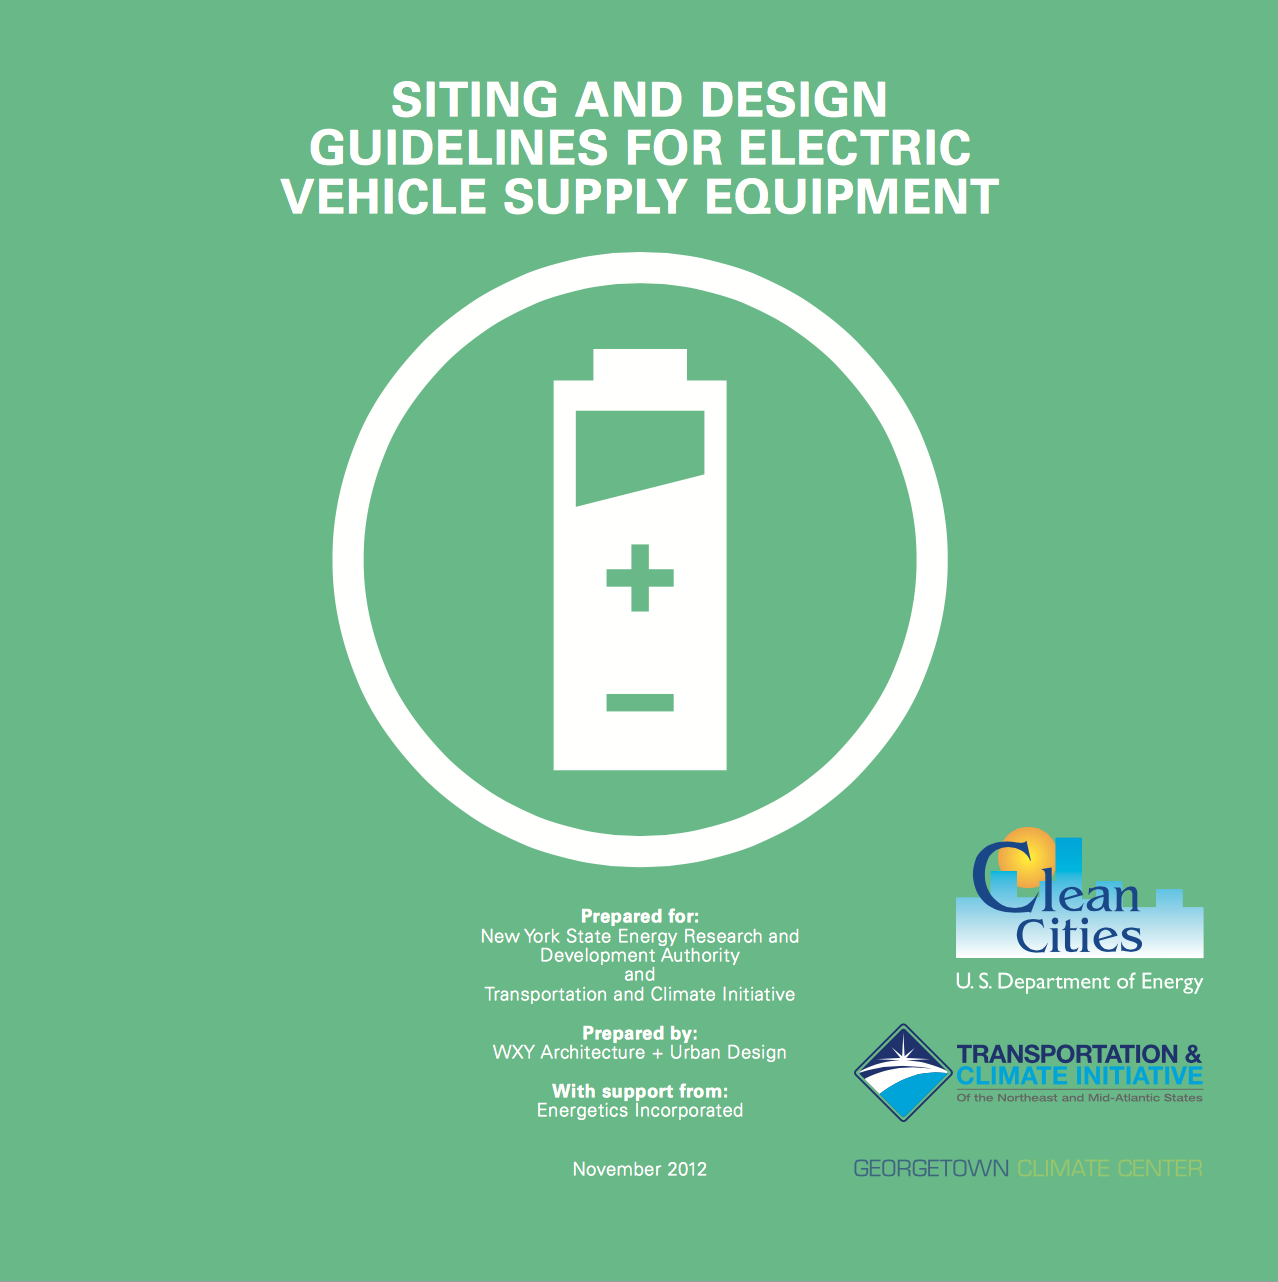 Siting and Design Guidelines for Electric Vehicle Supply Equipment